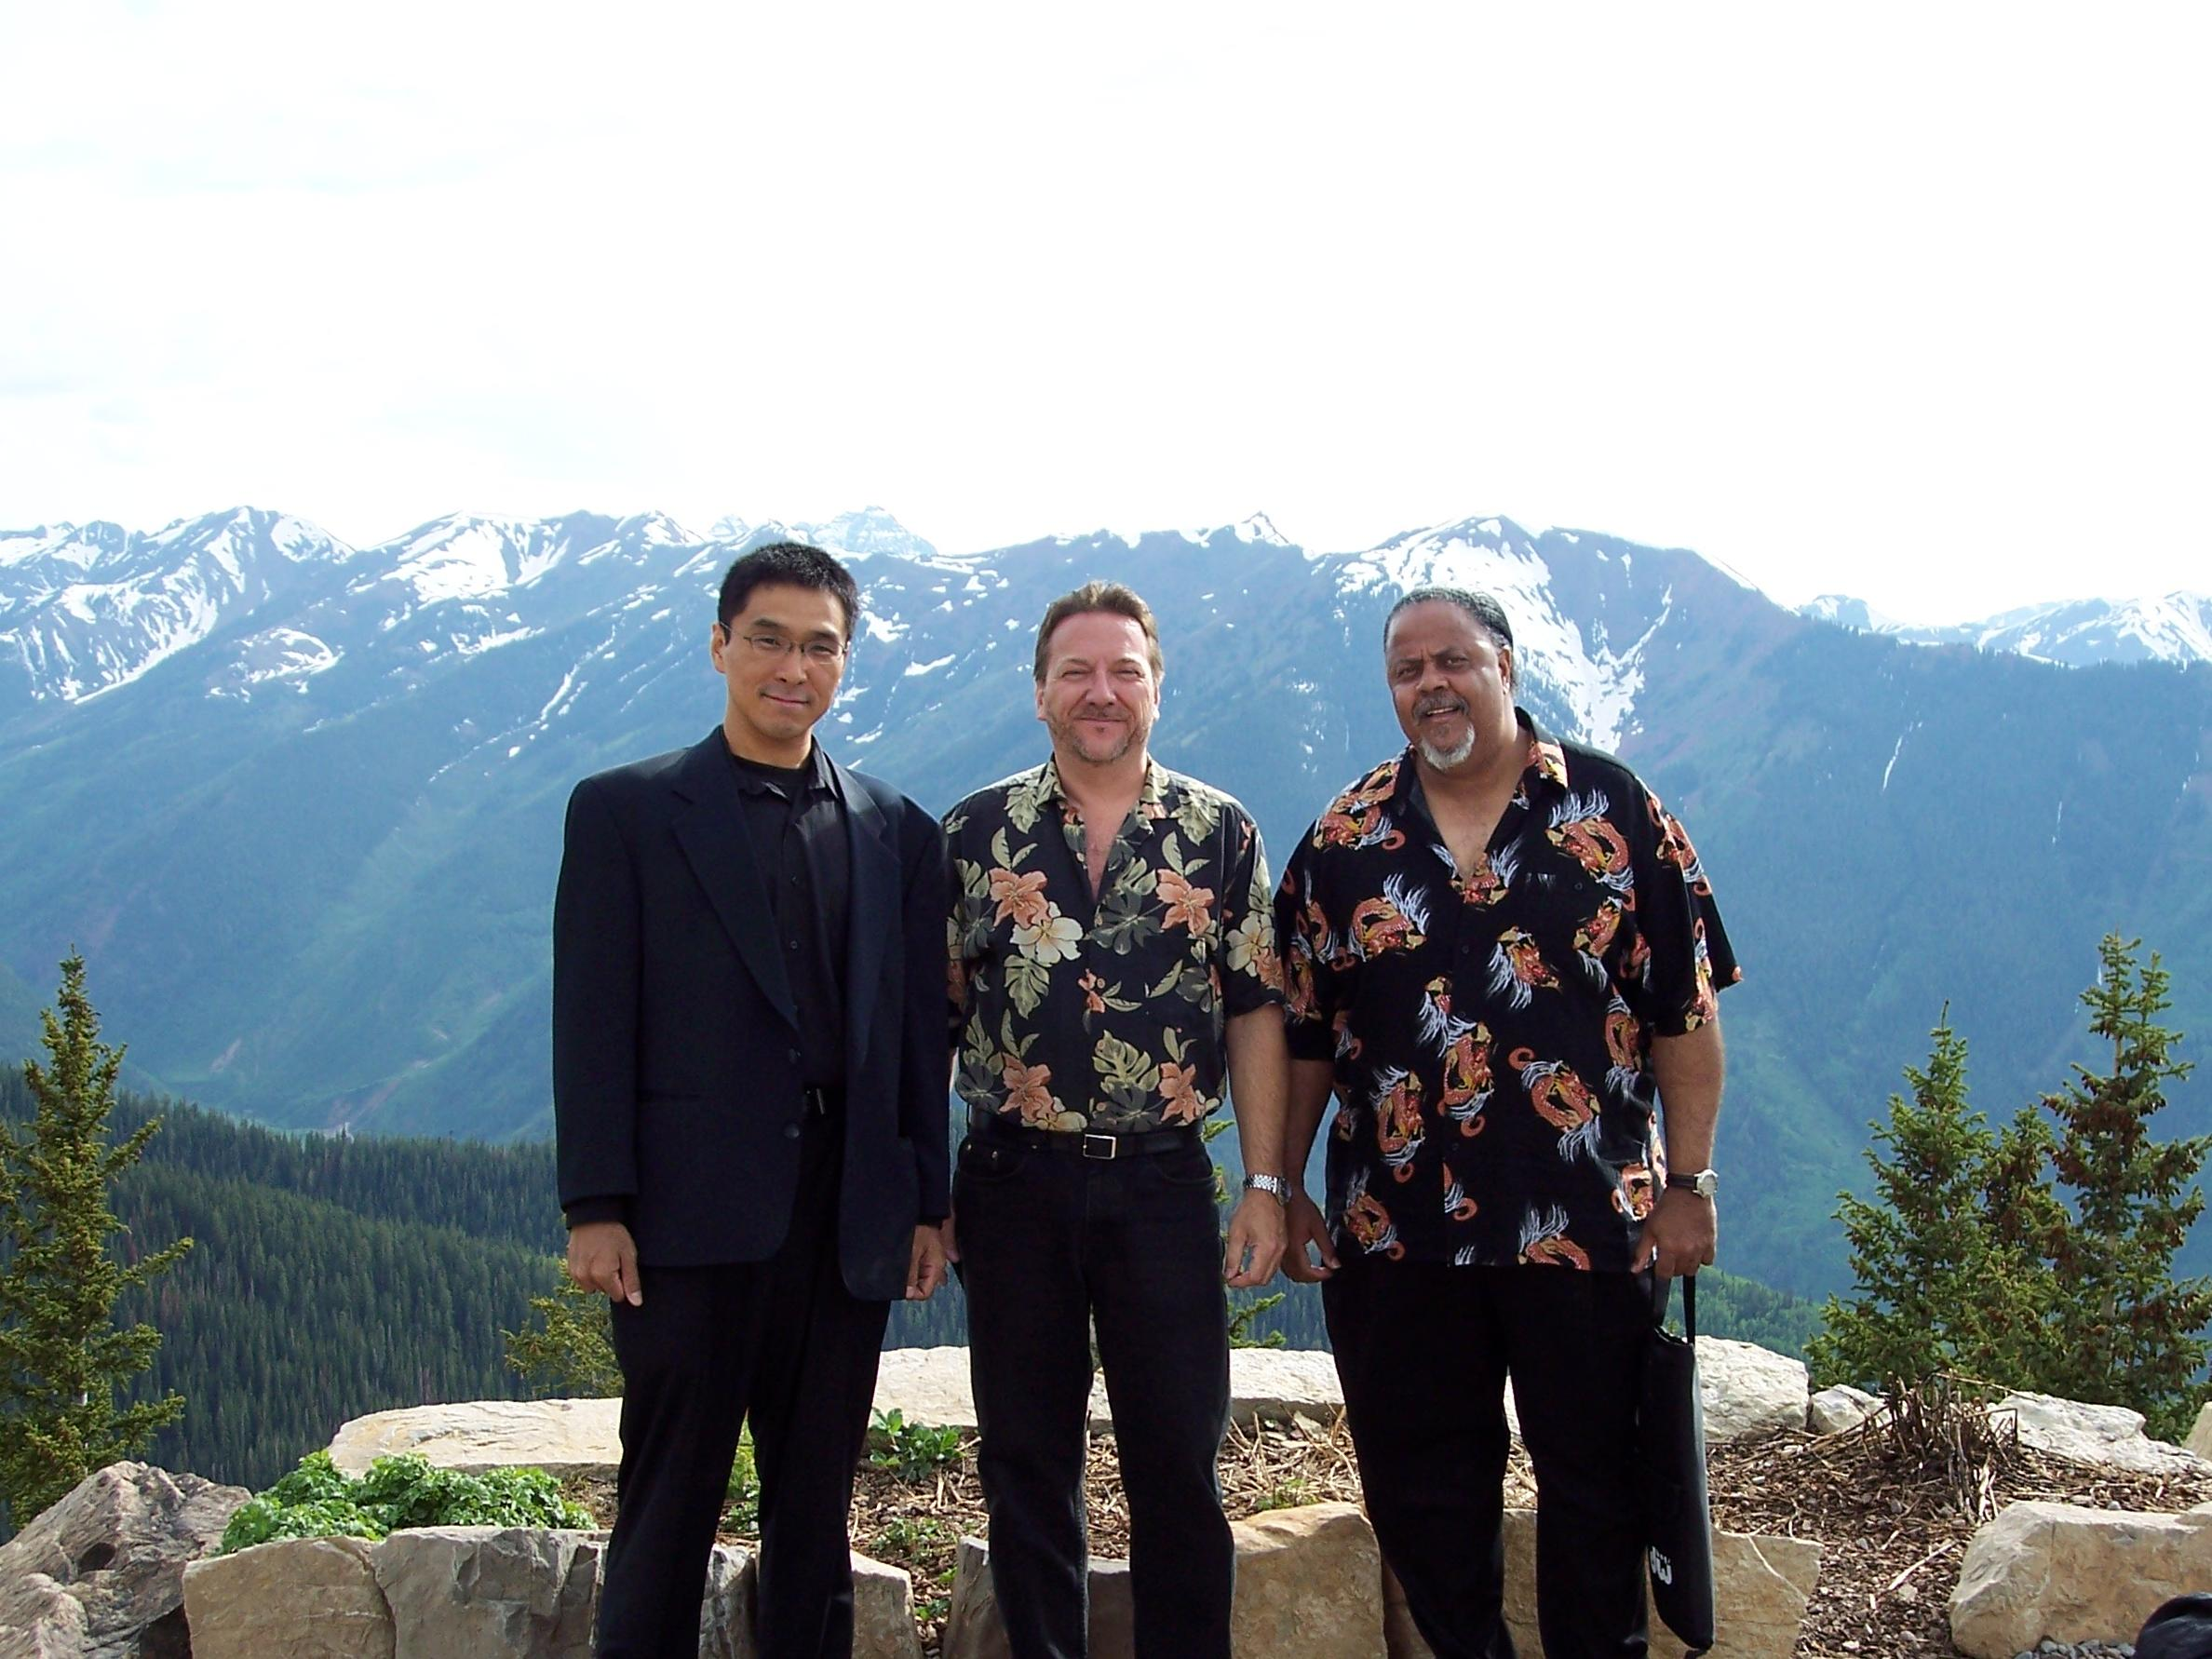 Shoji, Mark Wydra and Merle Perkins in Aspen Colorado